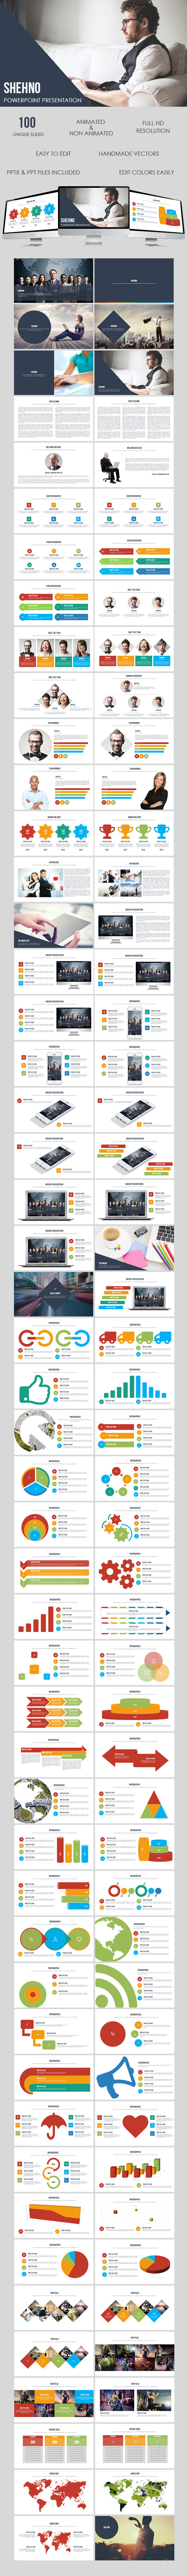 GraphicRiver Shehno Multipurpose Presentation Template 9902872